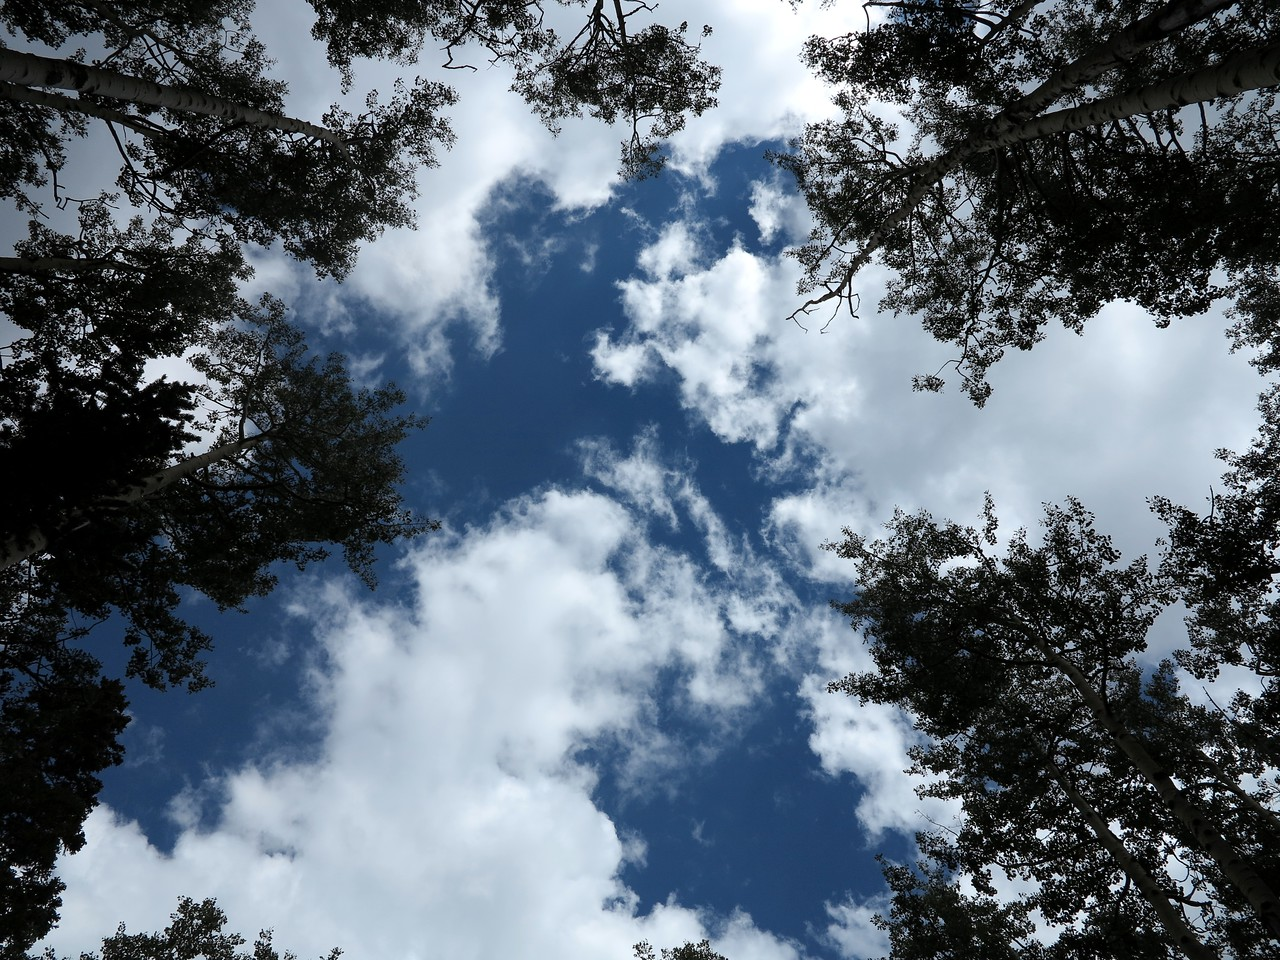 Looking straight up through the Aspens where the aircraft descended. It is unknown from what altitude the pilot lost control of the aircraft. <br /> <br /> The accident investigation confirmed that the aircraft contacted no trees or branches in its fall.